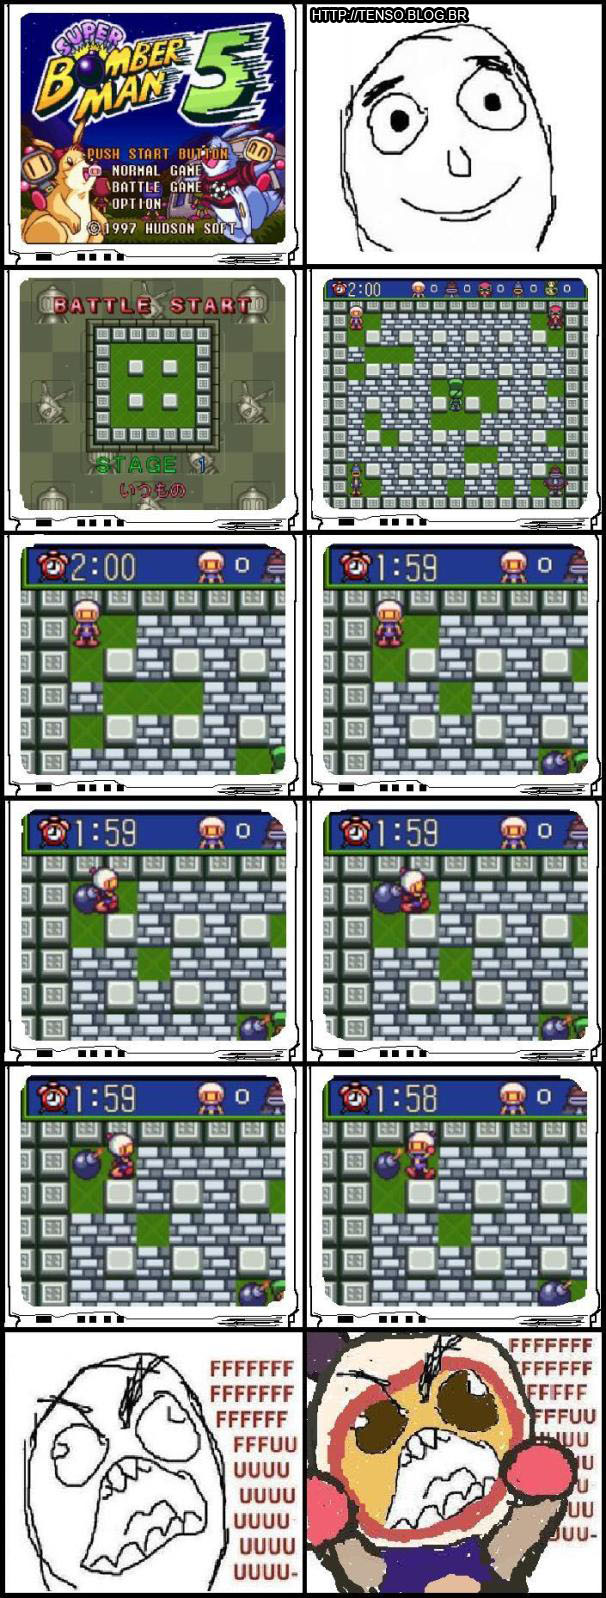 ragesuperbomberman52-copy